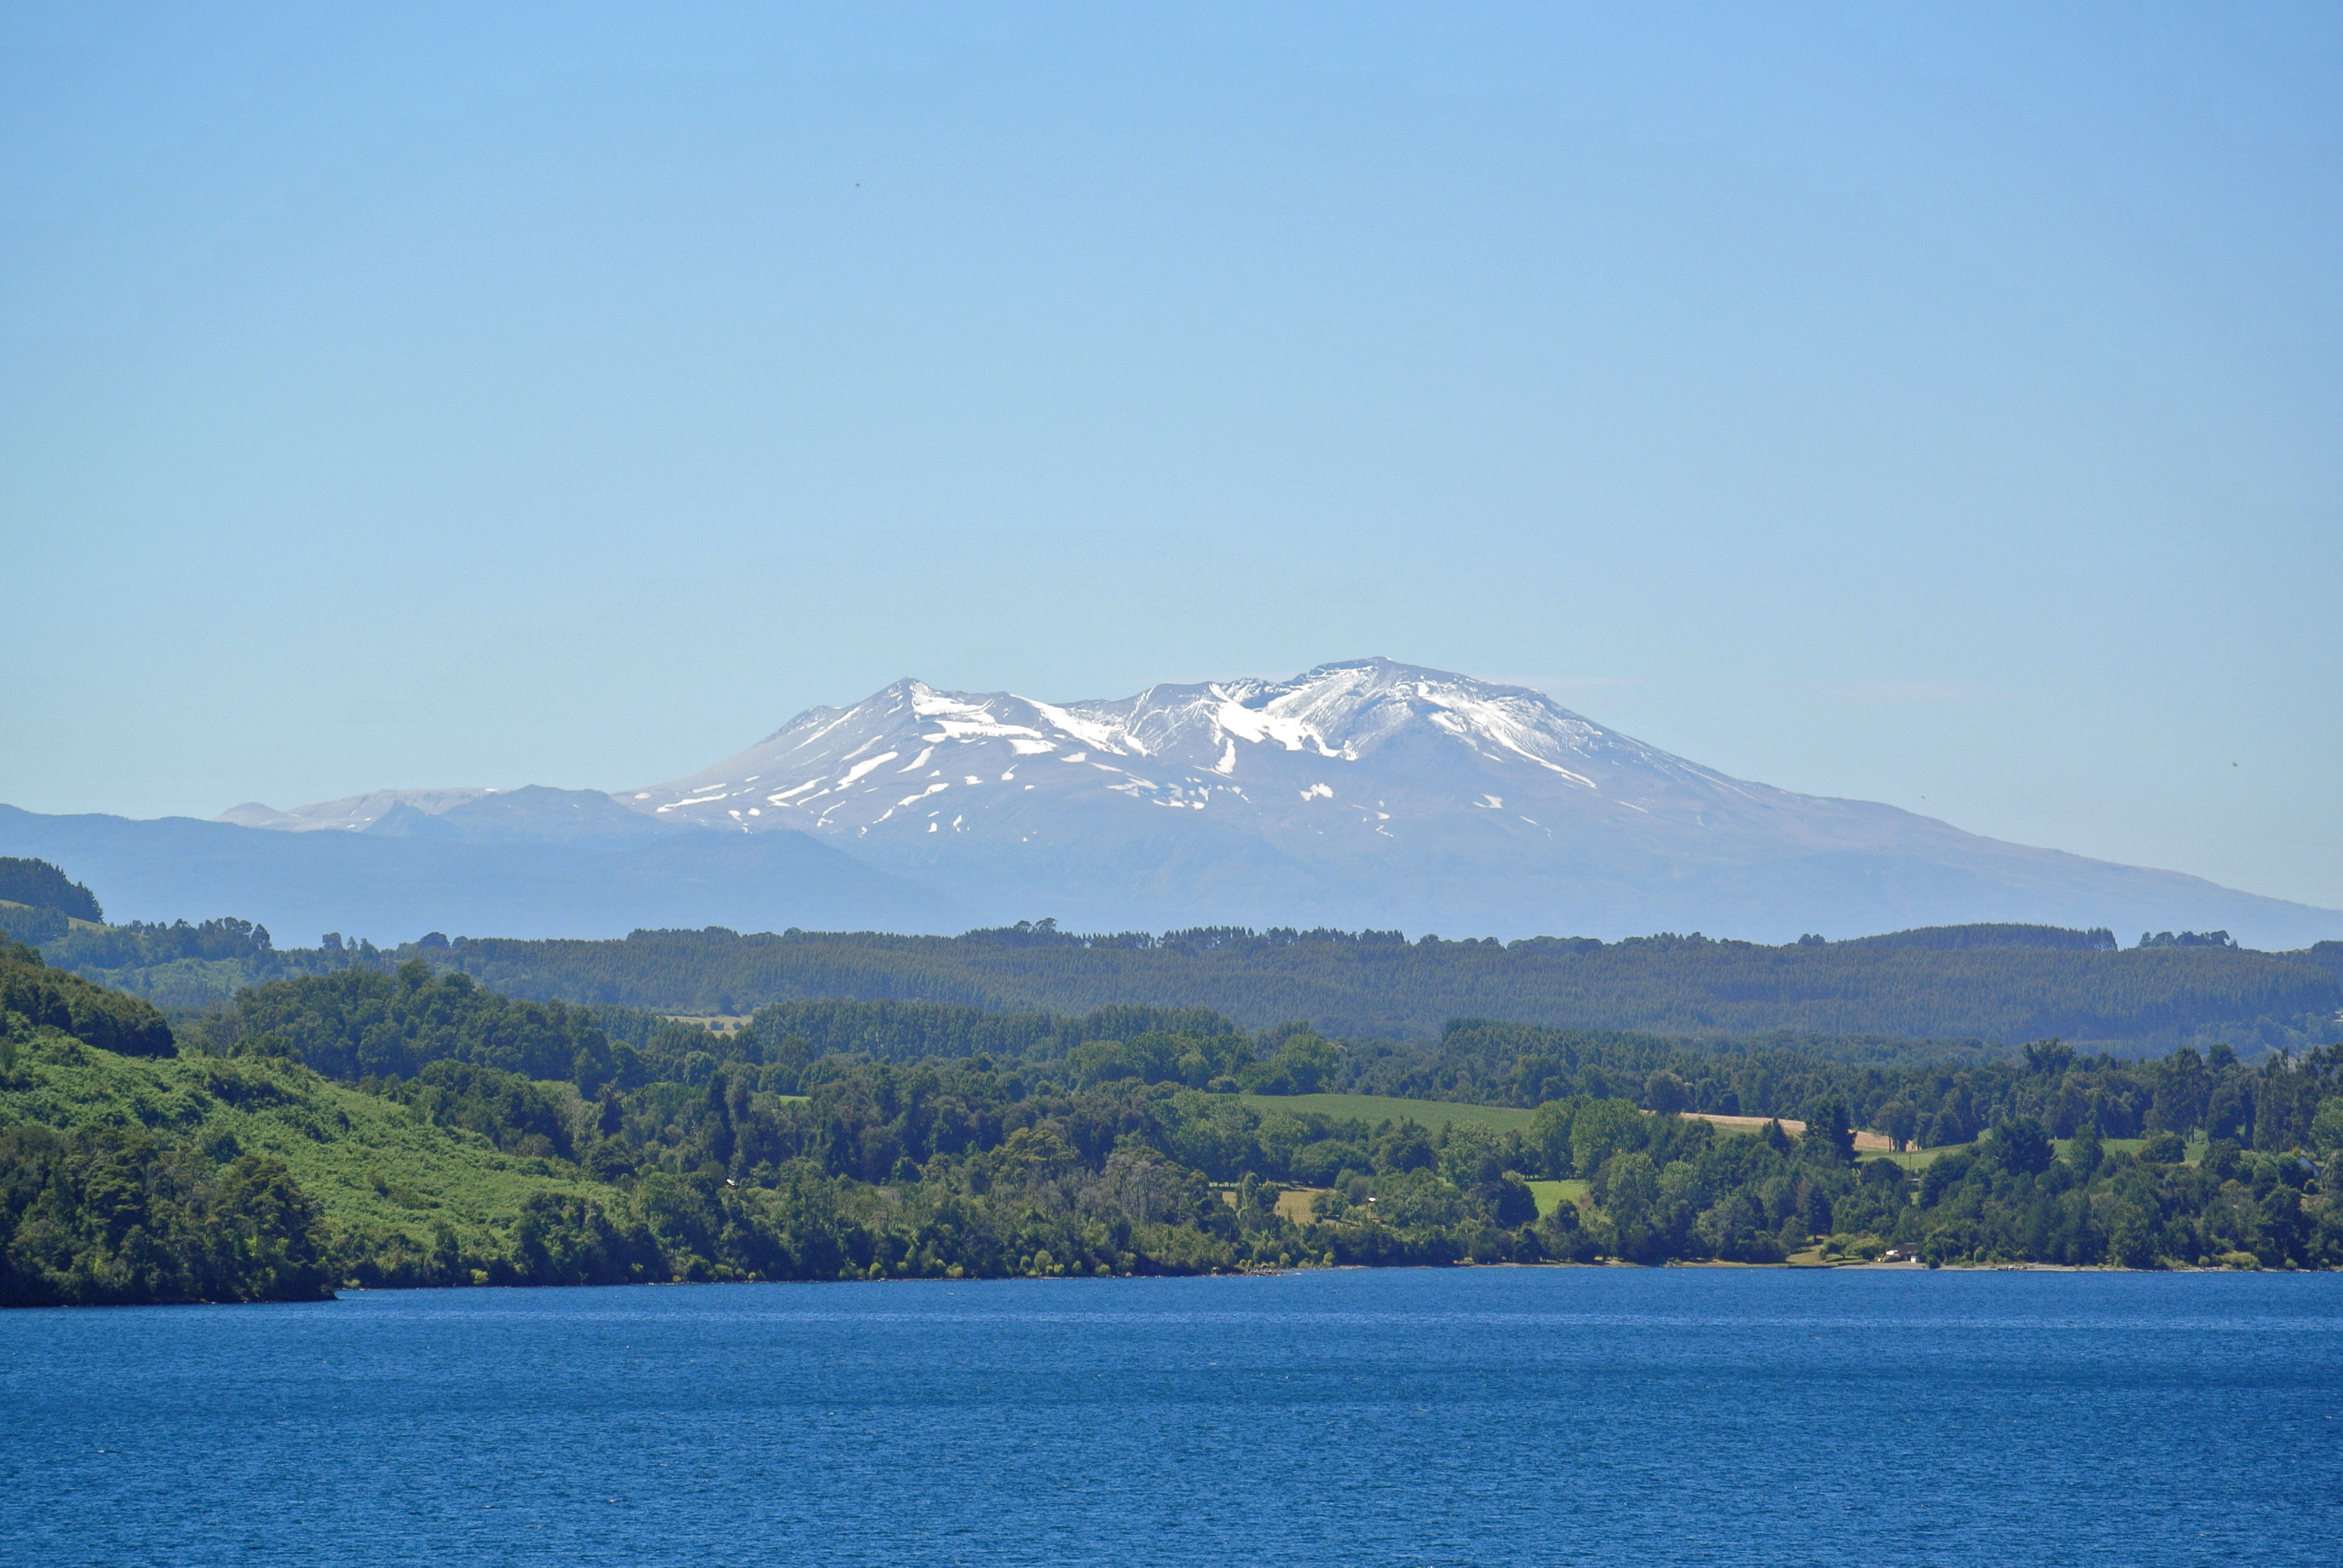 047 1202 Lago Rupanco Overview - NP Puyehue 7JPG